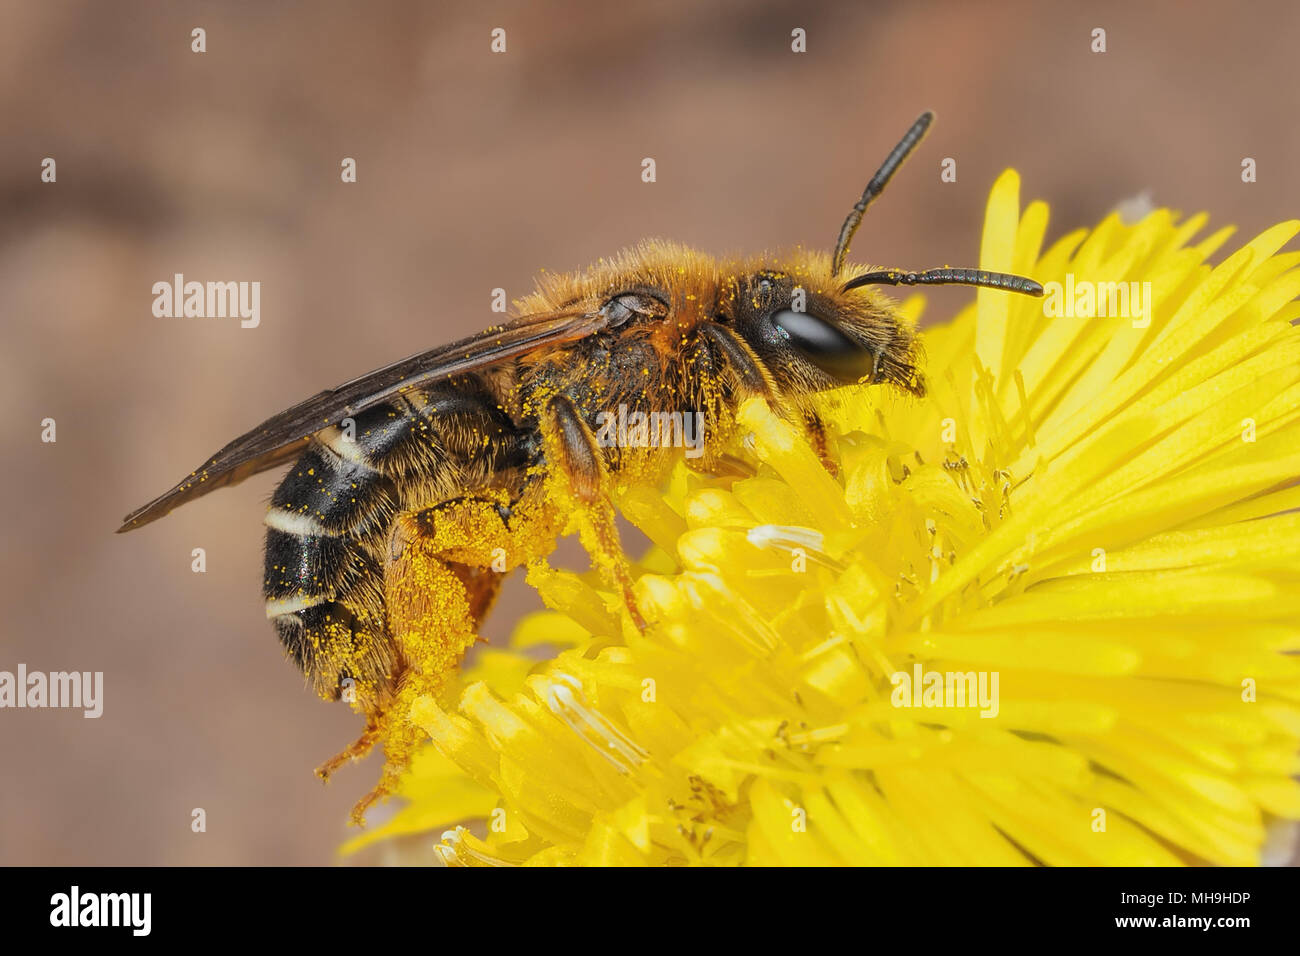 Sweat Bee (Halictus rubicundus) feeding on Coltsfoot flower. Tipperary, Ireland - Stock Image